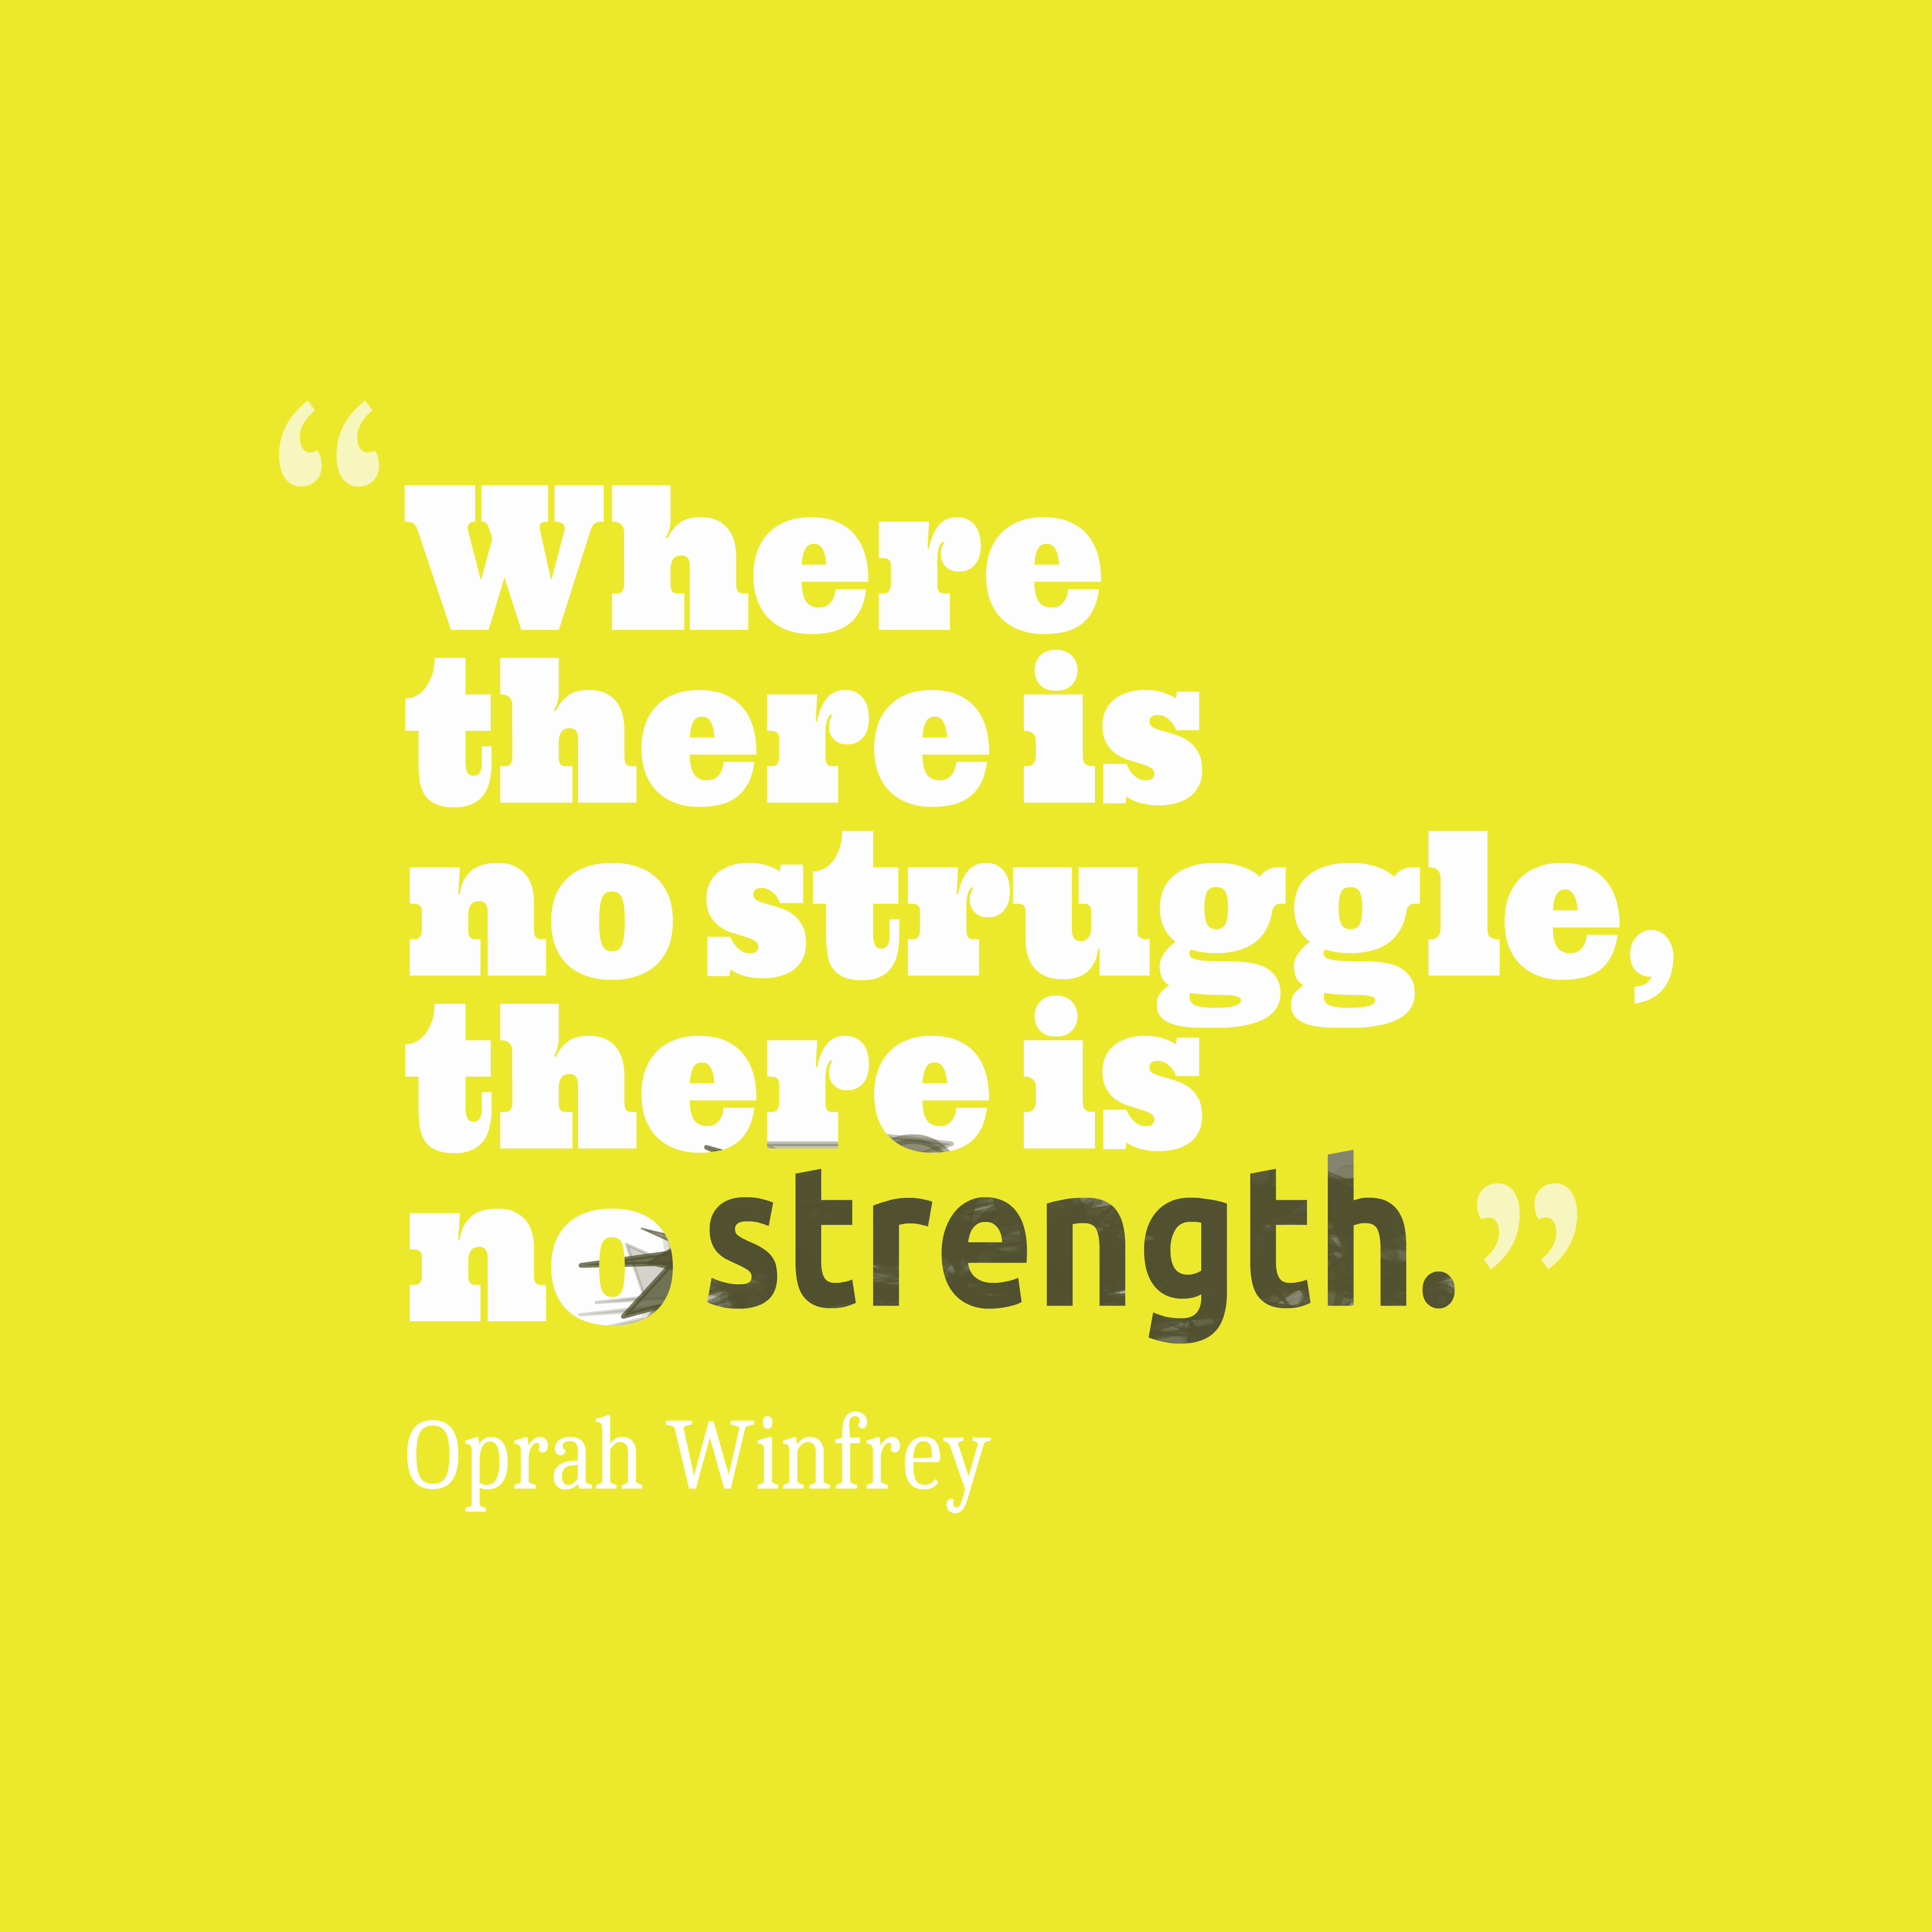 Picture Oprah Winfrey quote about strength. | QuotesCover.com